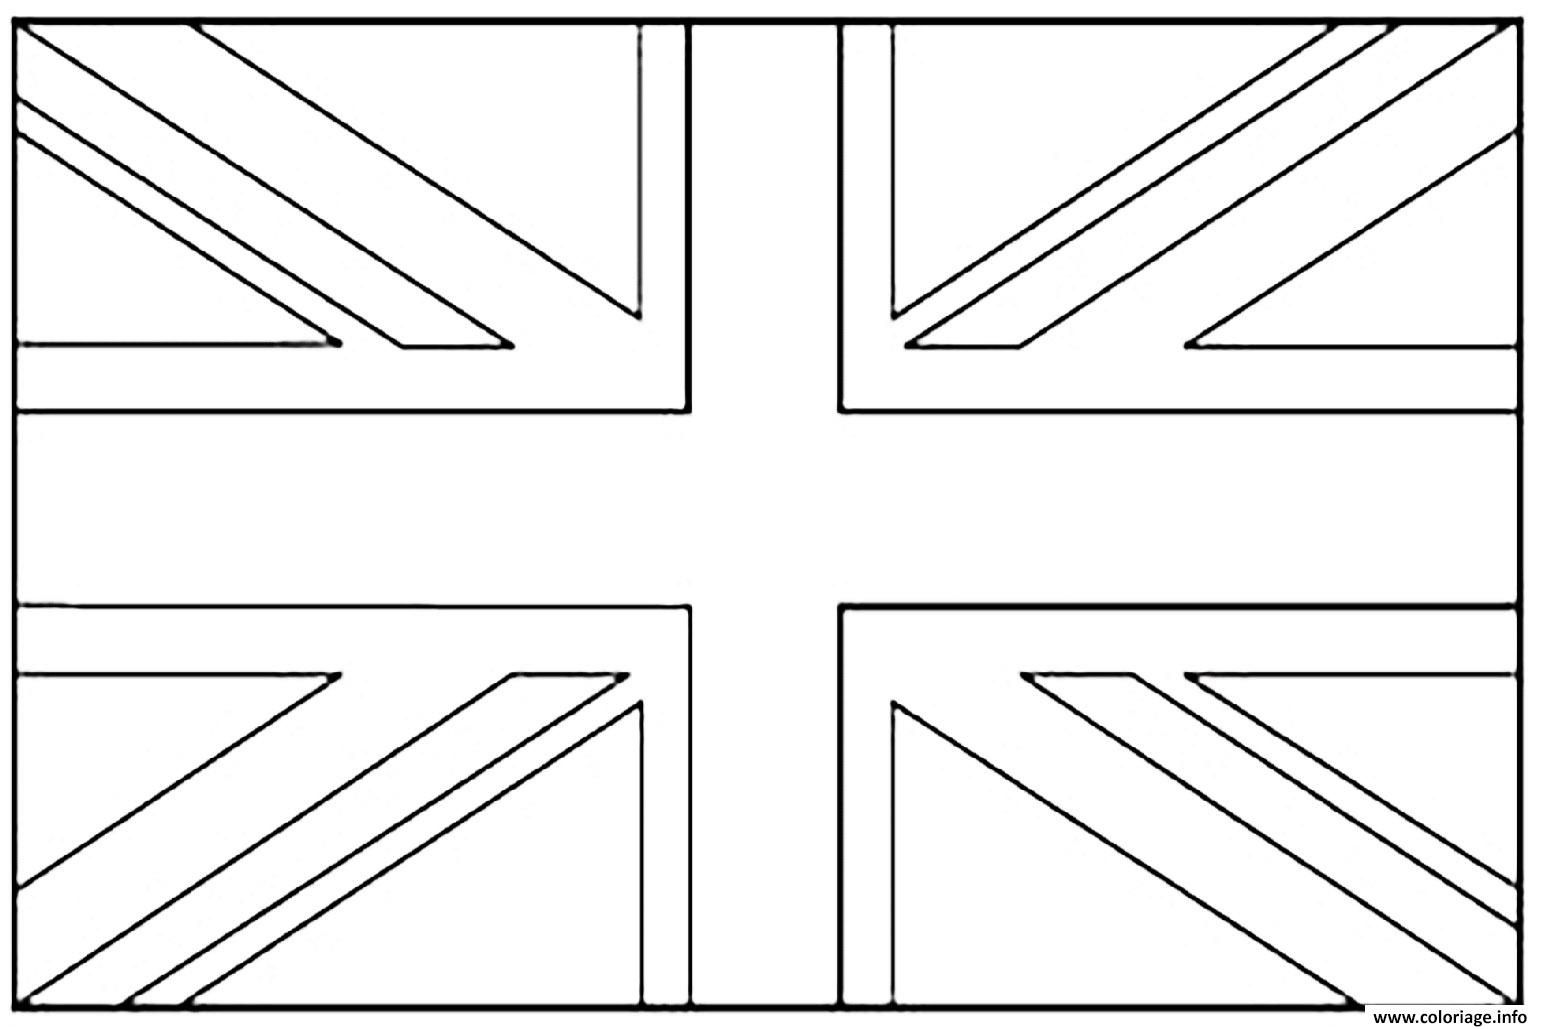 Coloriage Drapeau Angleterre Jecolorie In 2020 Flagge England Grossbritannien Flagge Uk Flagge